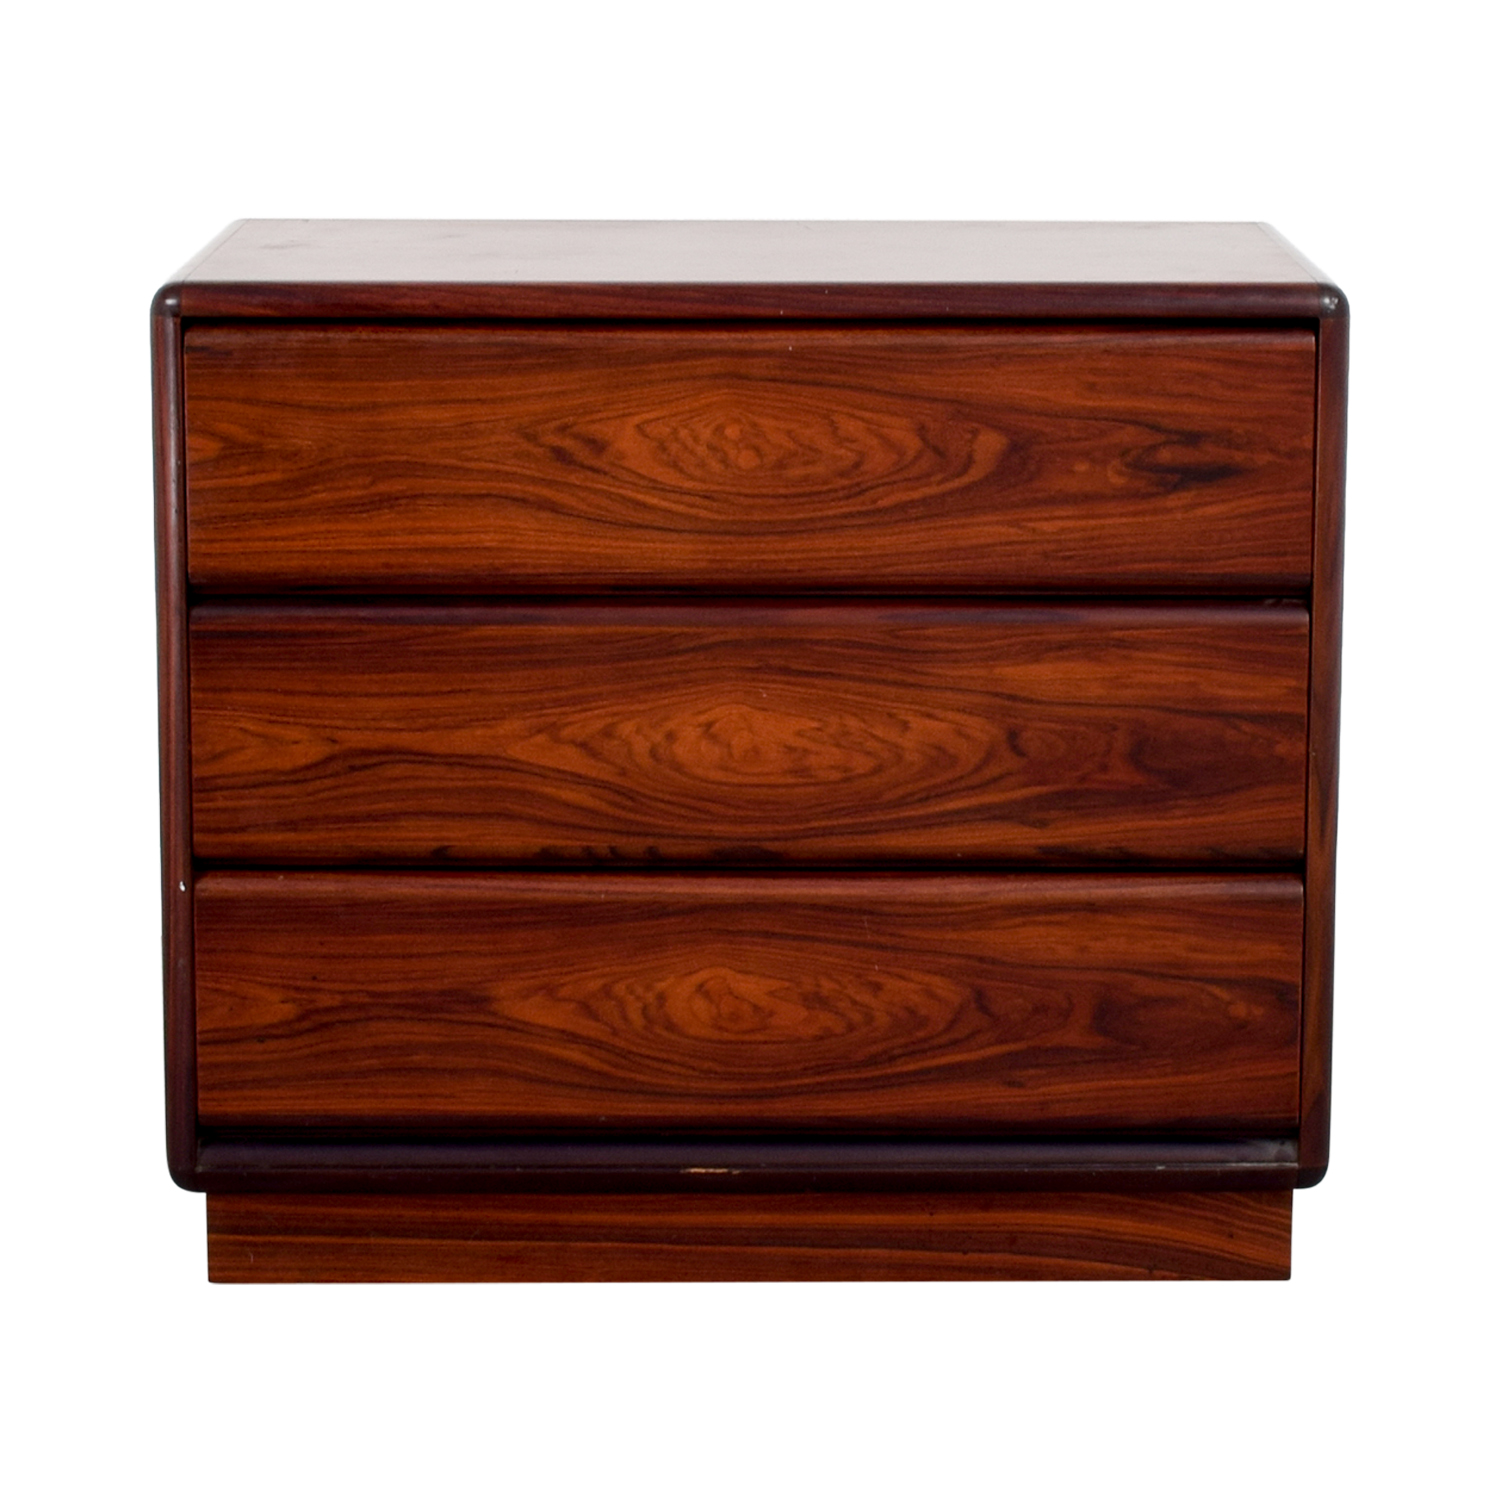 Brouer Møbelfabrik from Denmark Three-Drawer Dresser / Dressers